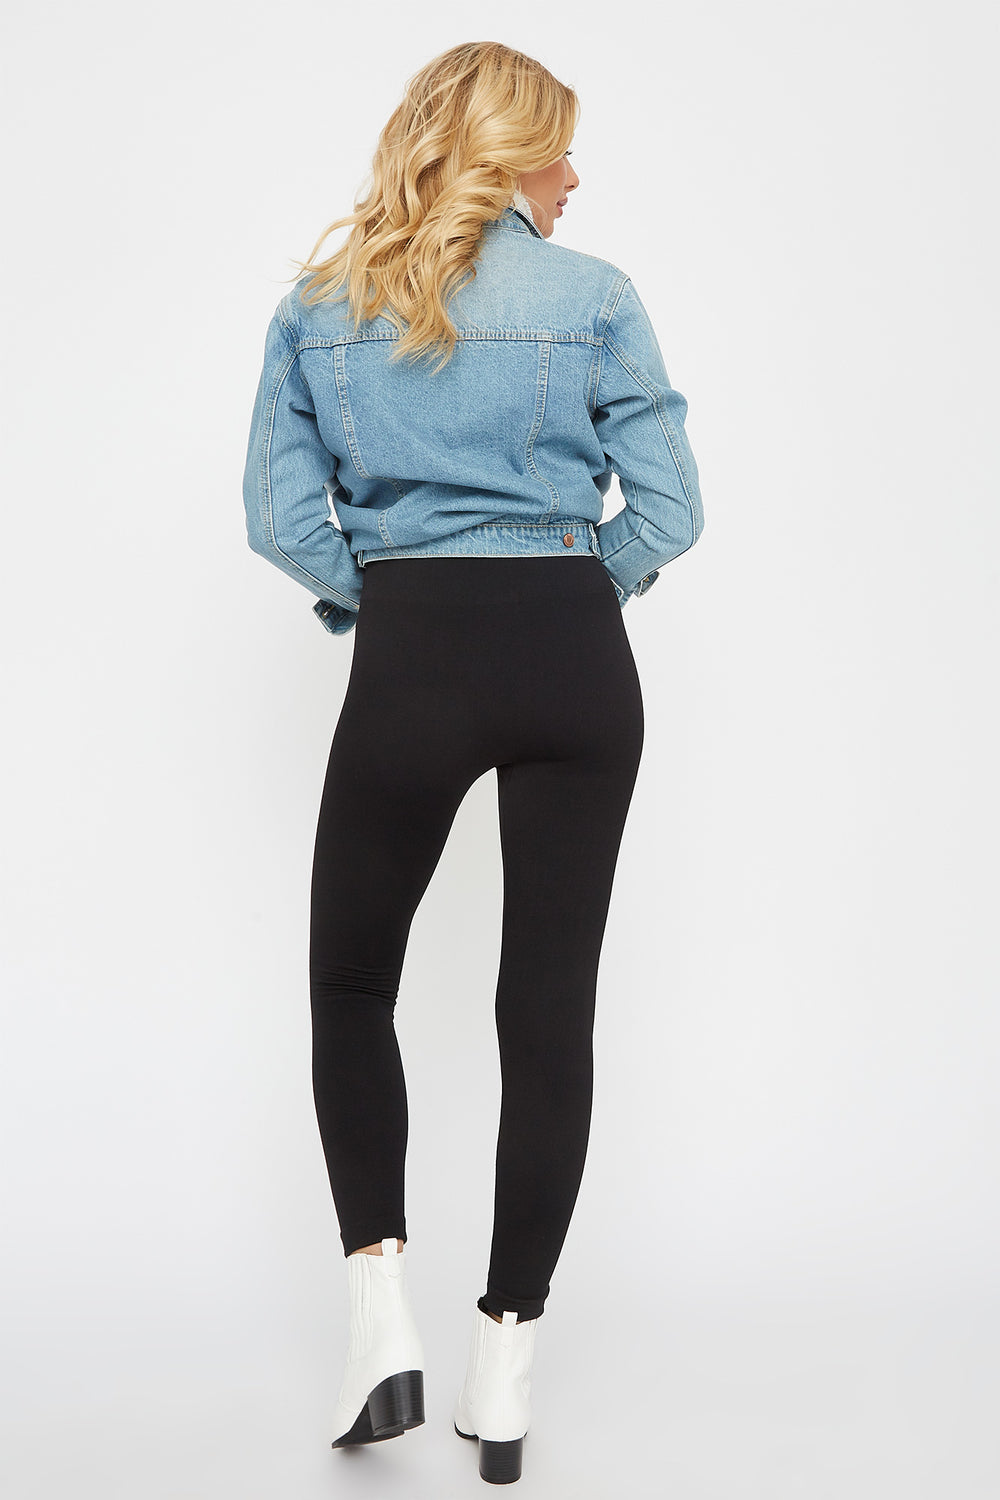 Faux-Fur Legging Black